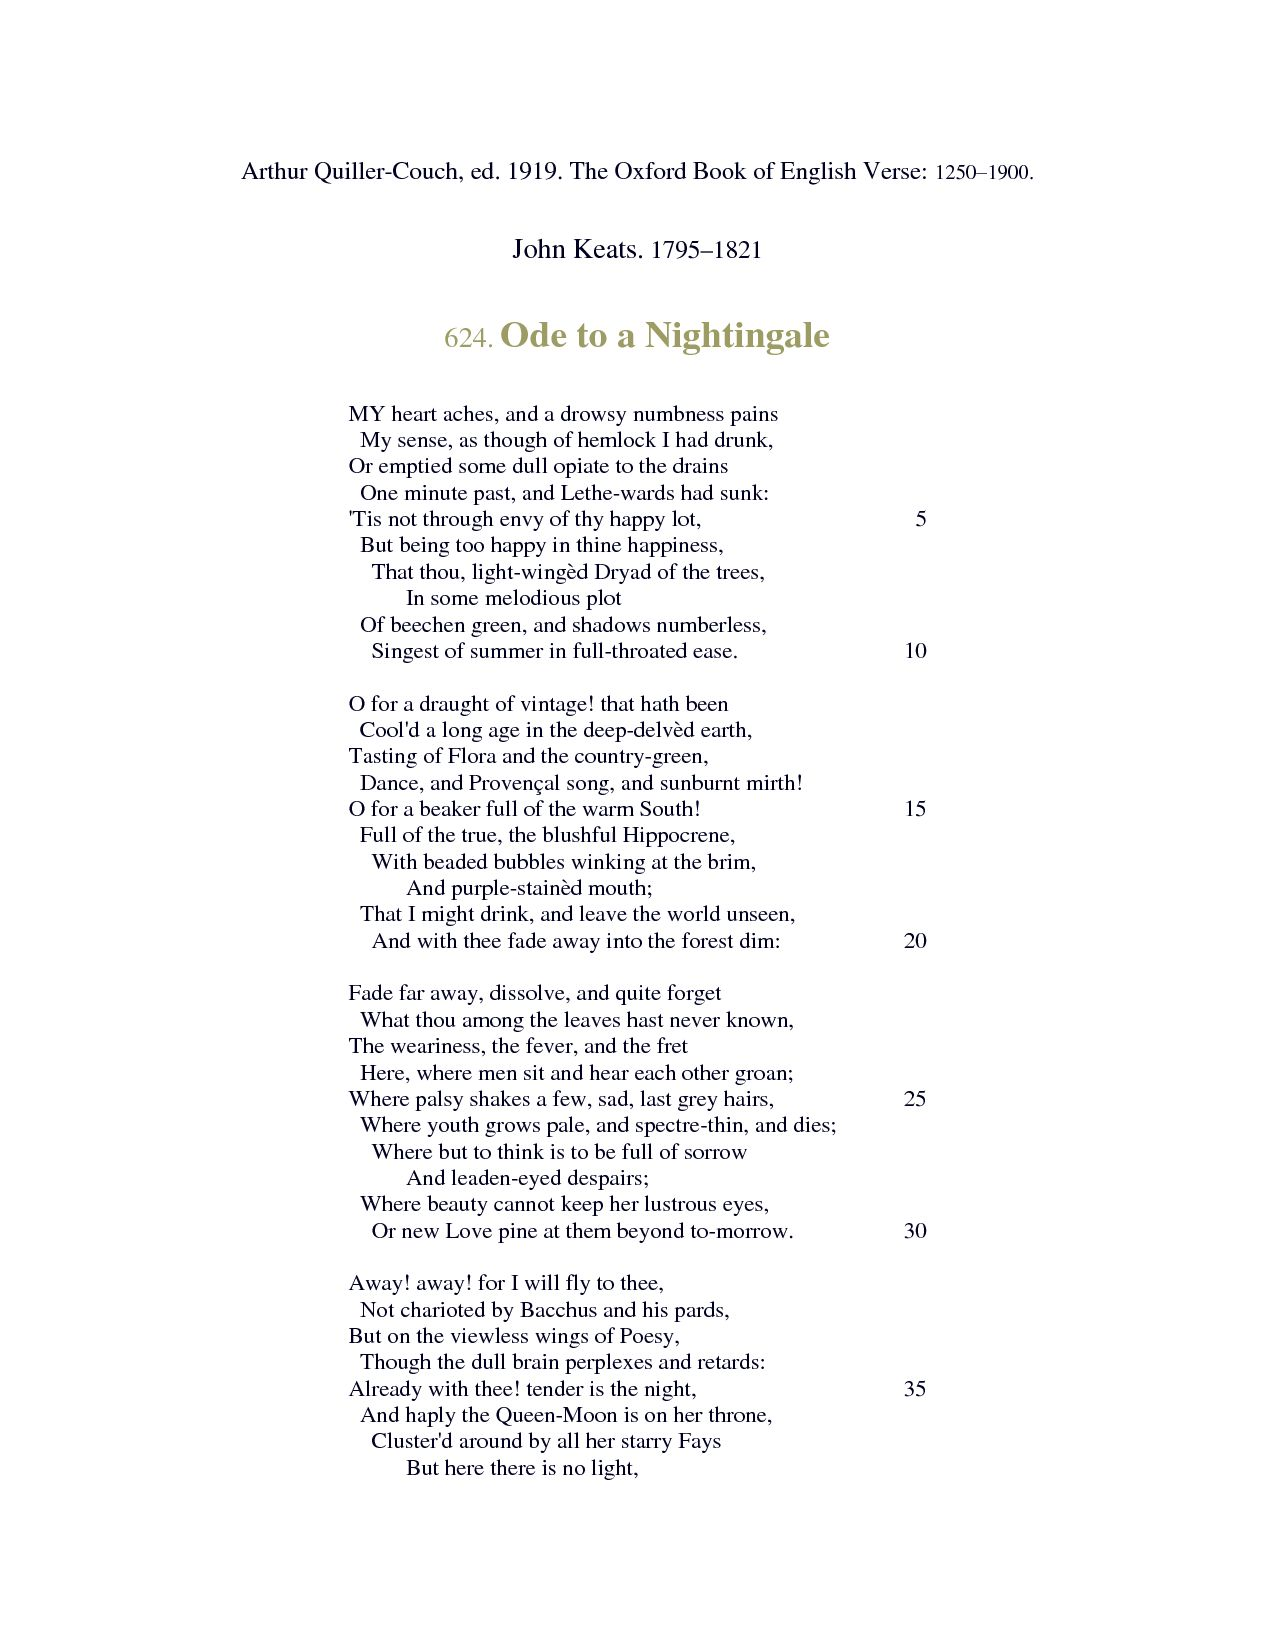 ode to a nightingale john keats shakespeare friends ode to a nightingale john keats